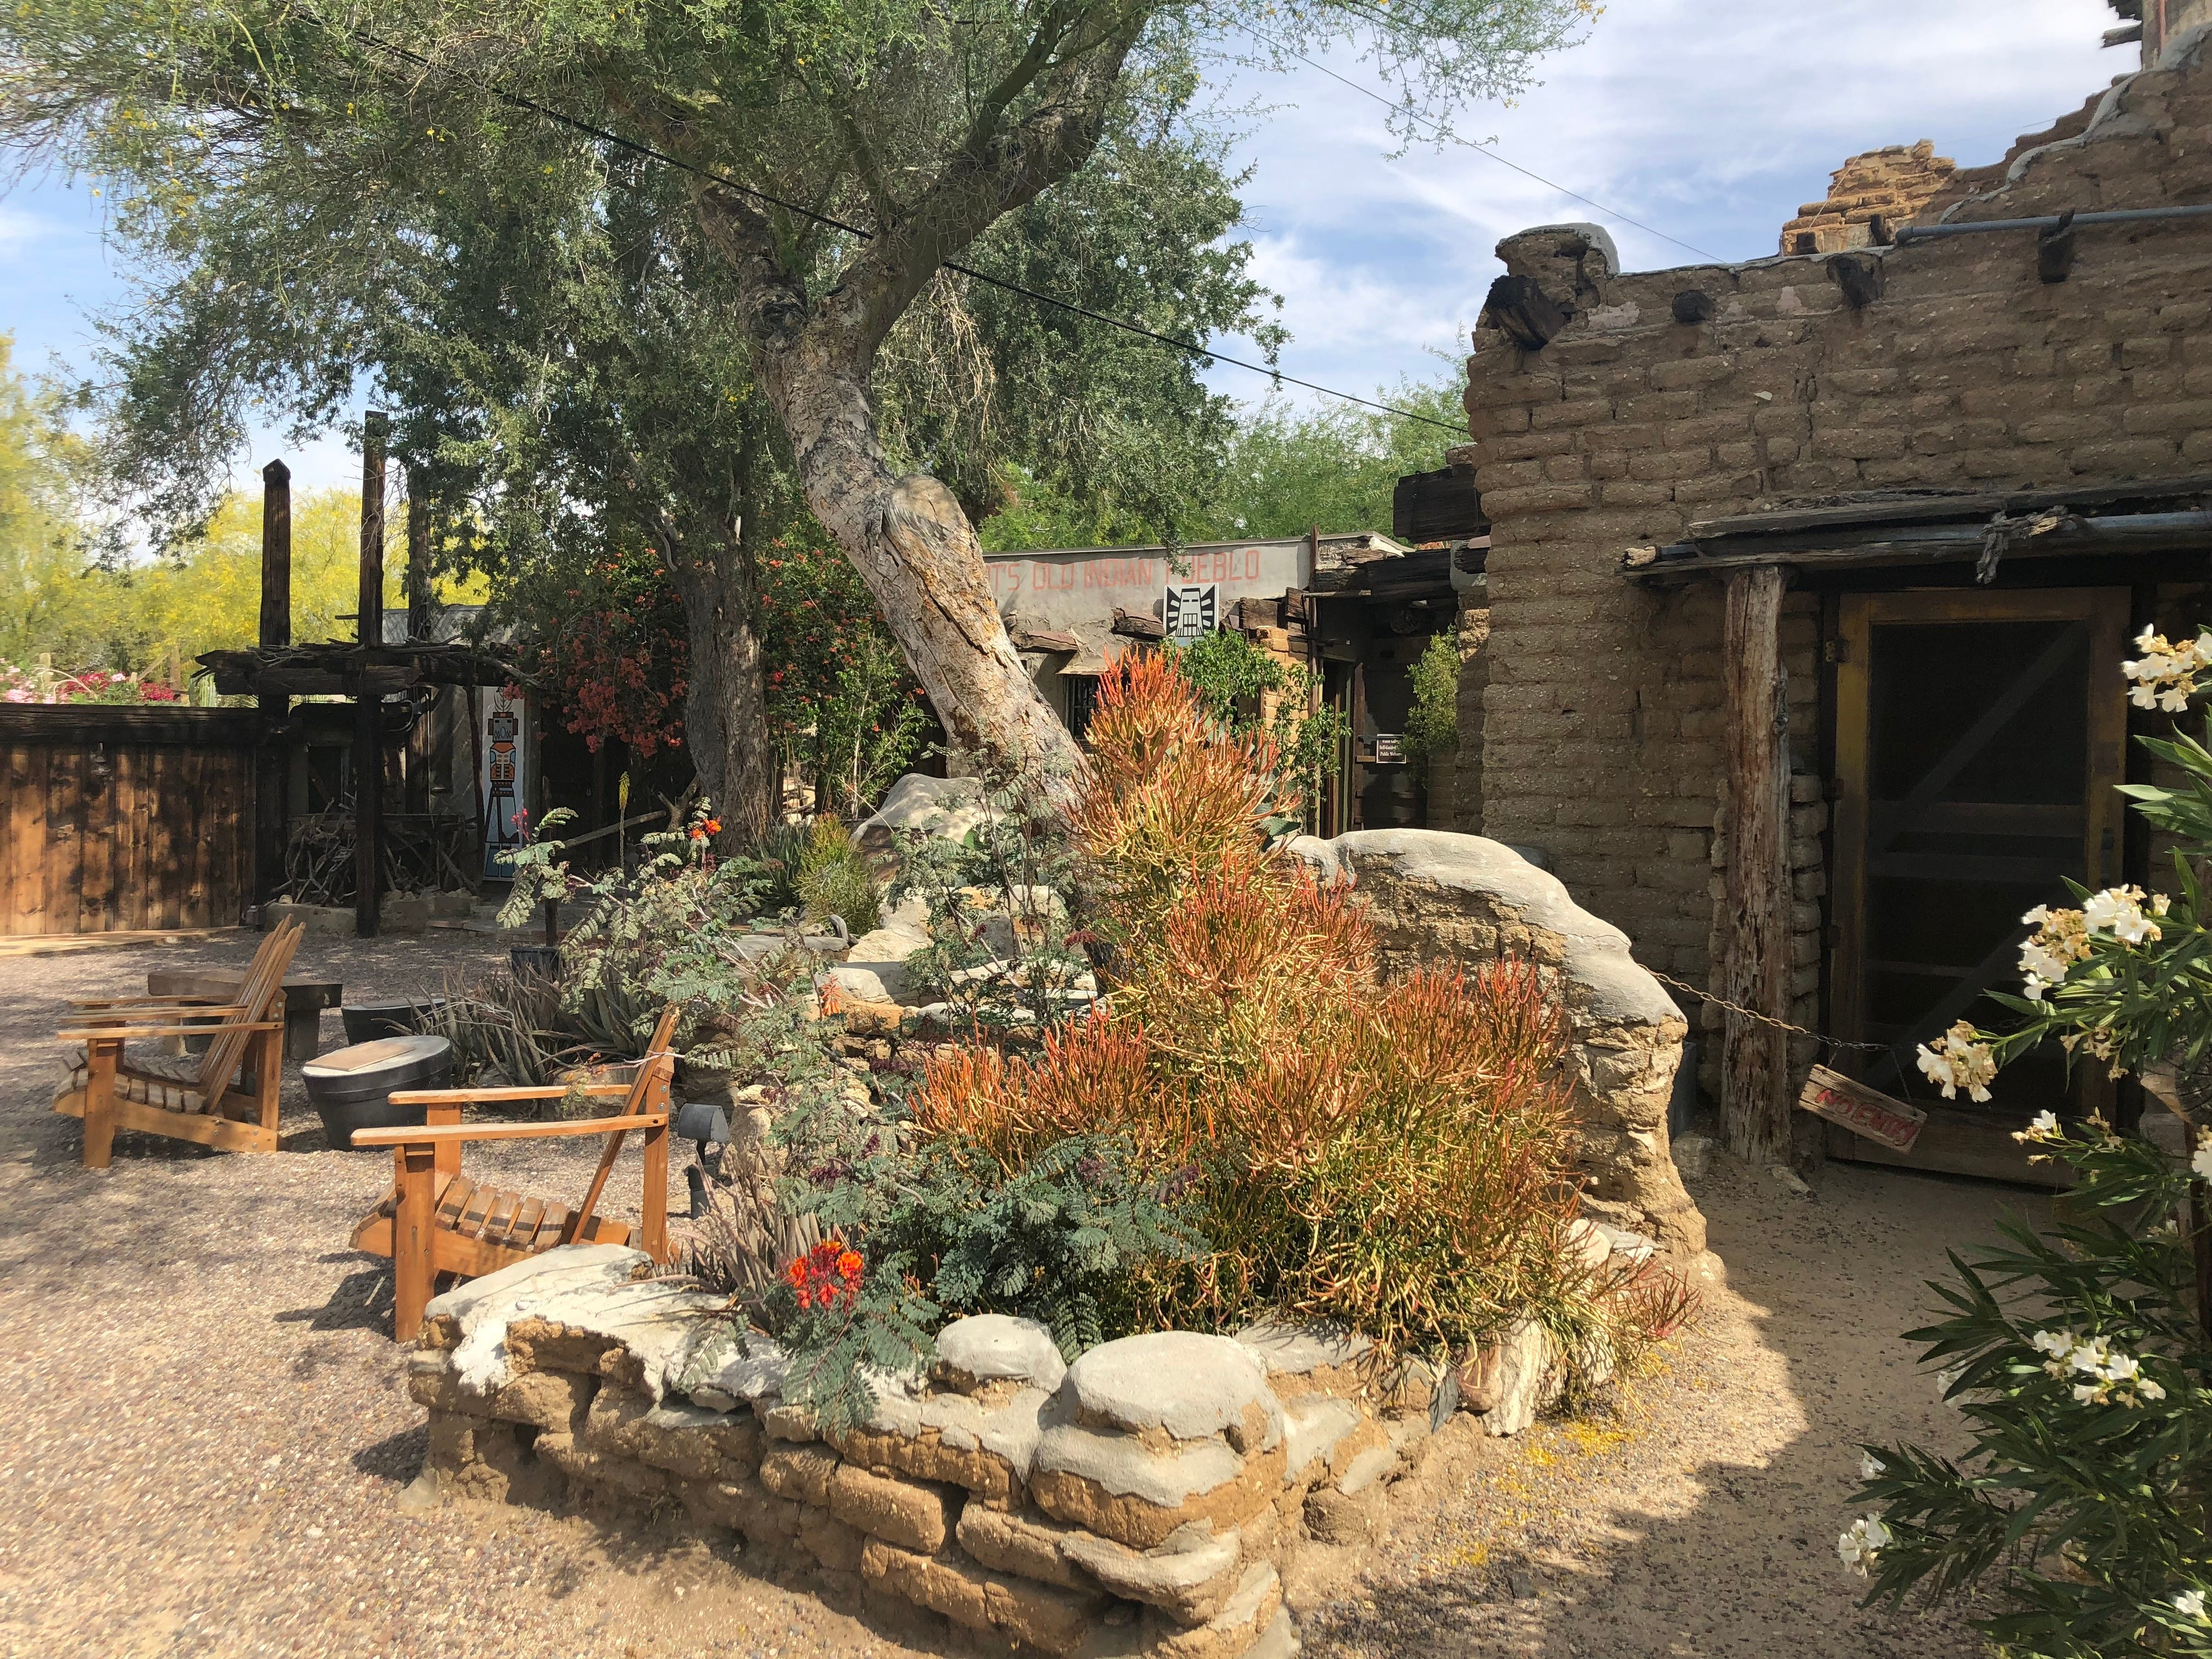 The grounds of the Cabot's Pueblo Museum in Desert Hot Springs.